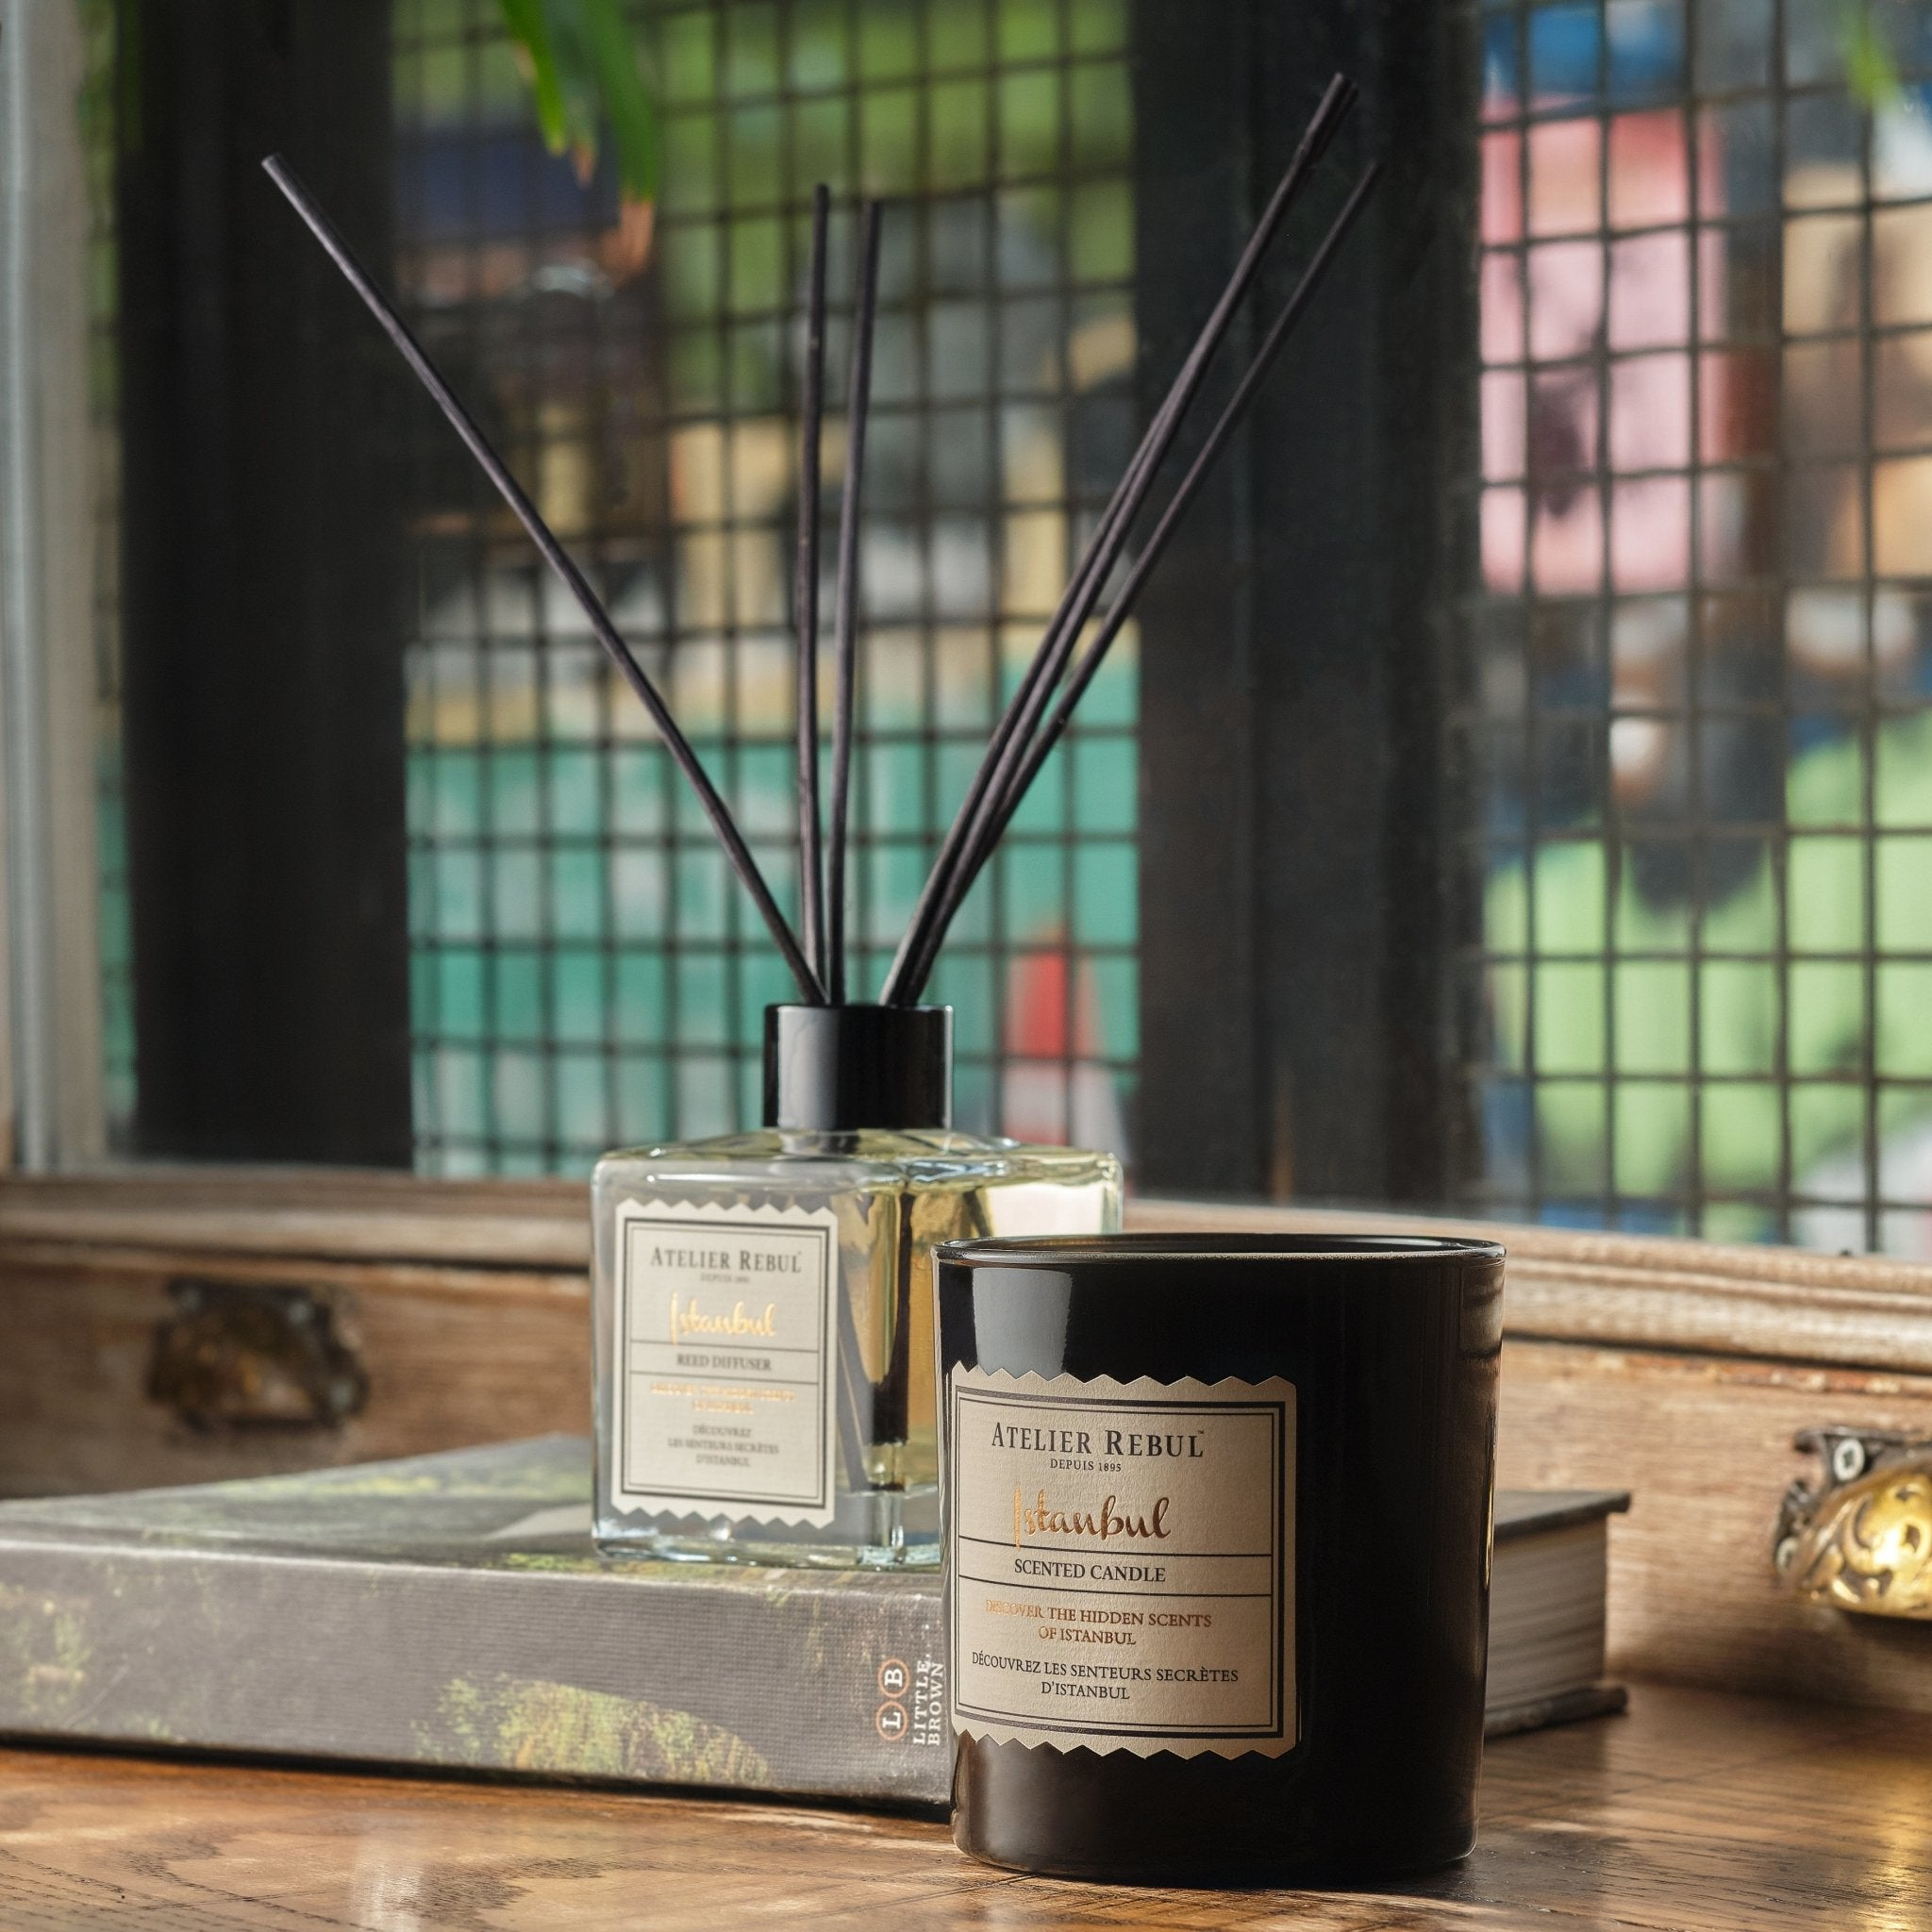 Istanbul Scented Candle 235g - Atelier Rebul